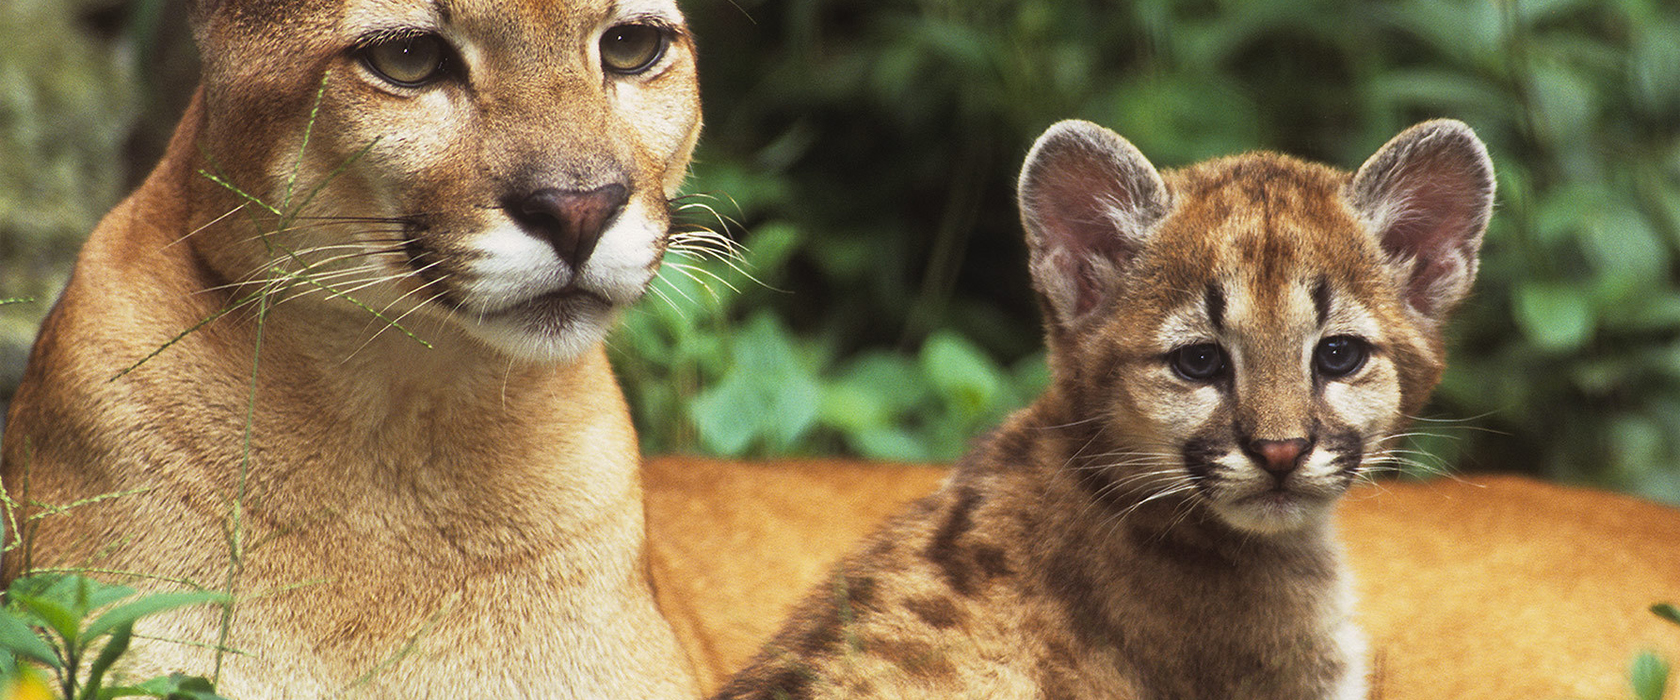 Mountain lion and cub